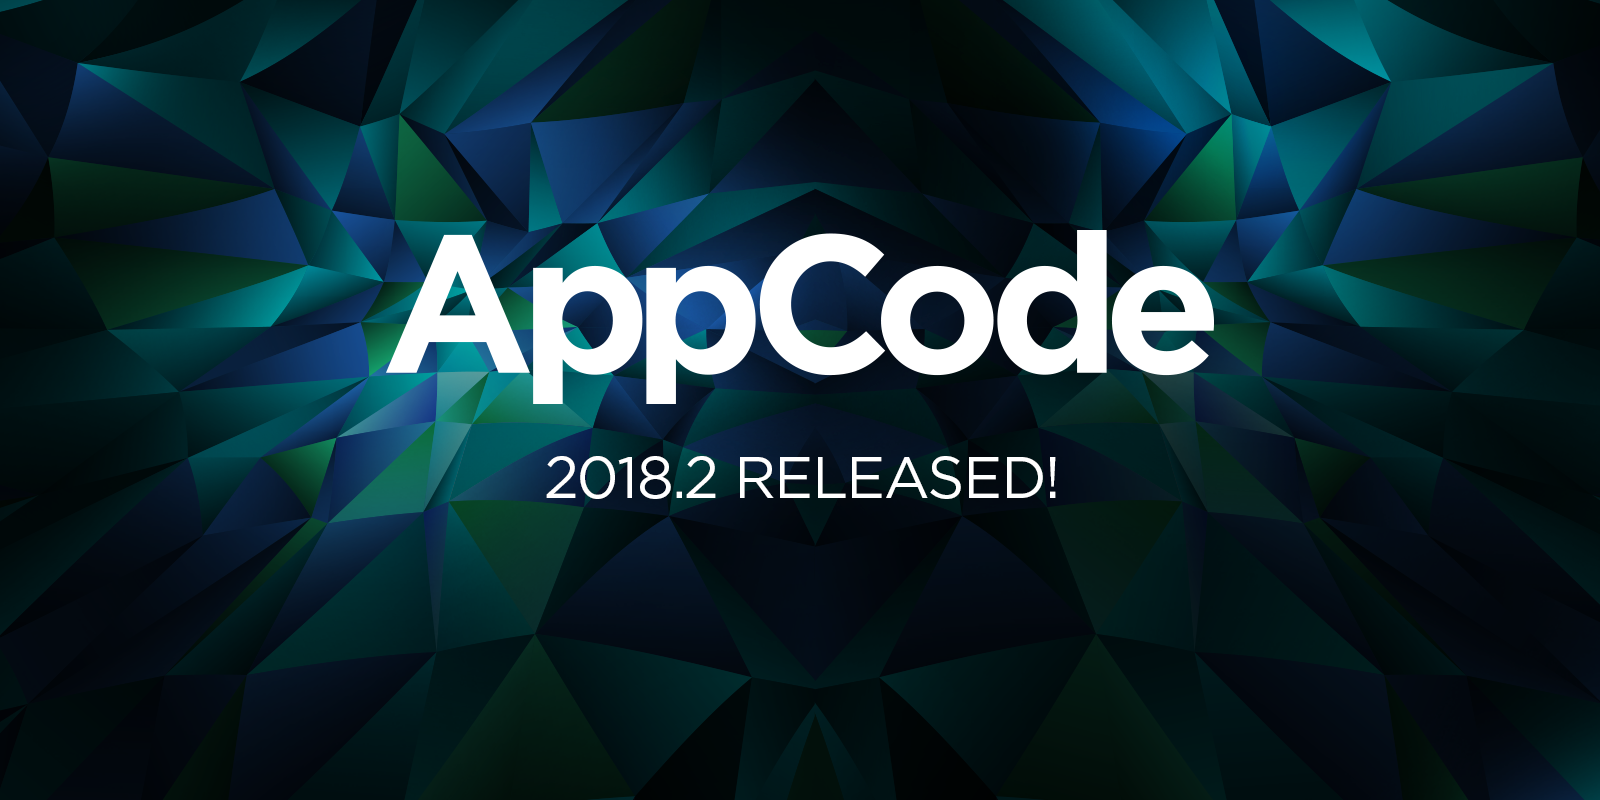 What's new in AppCode 2018.2